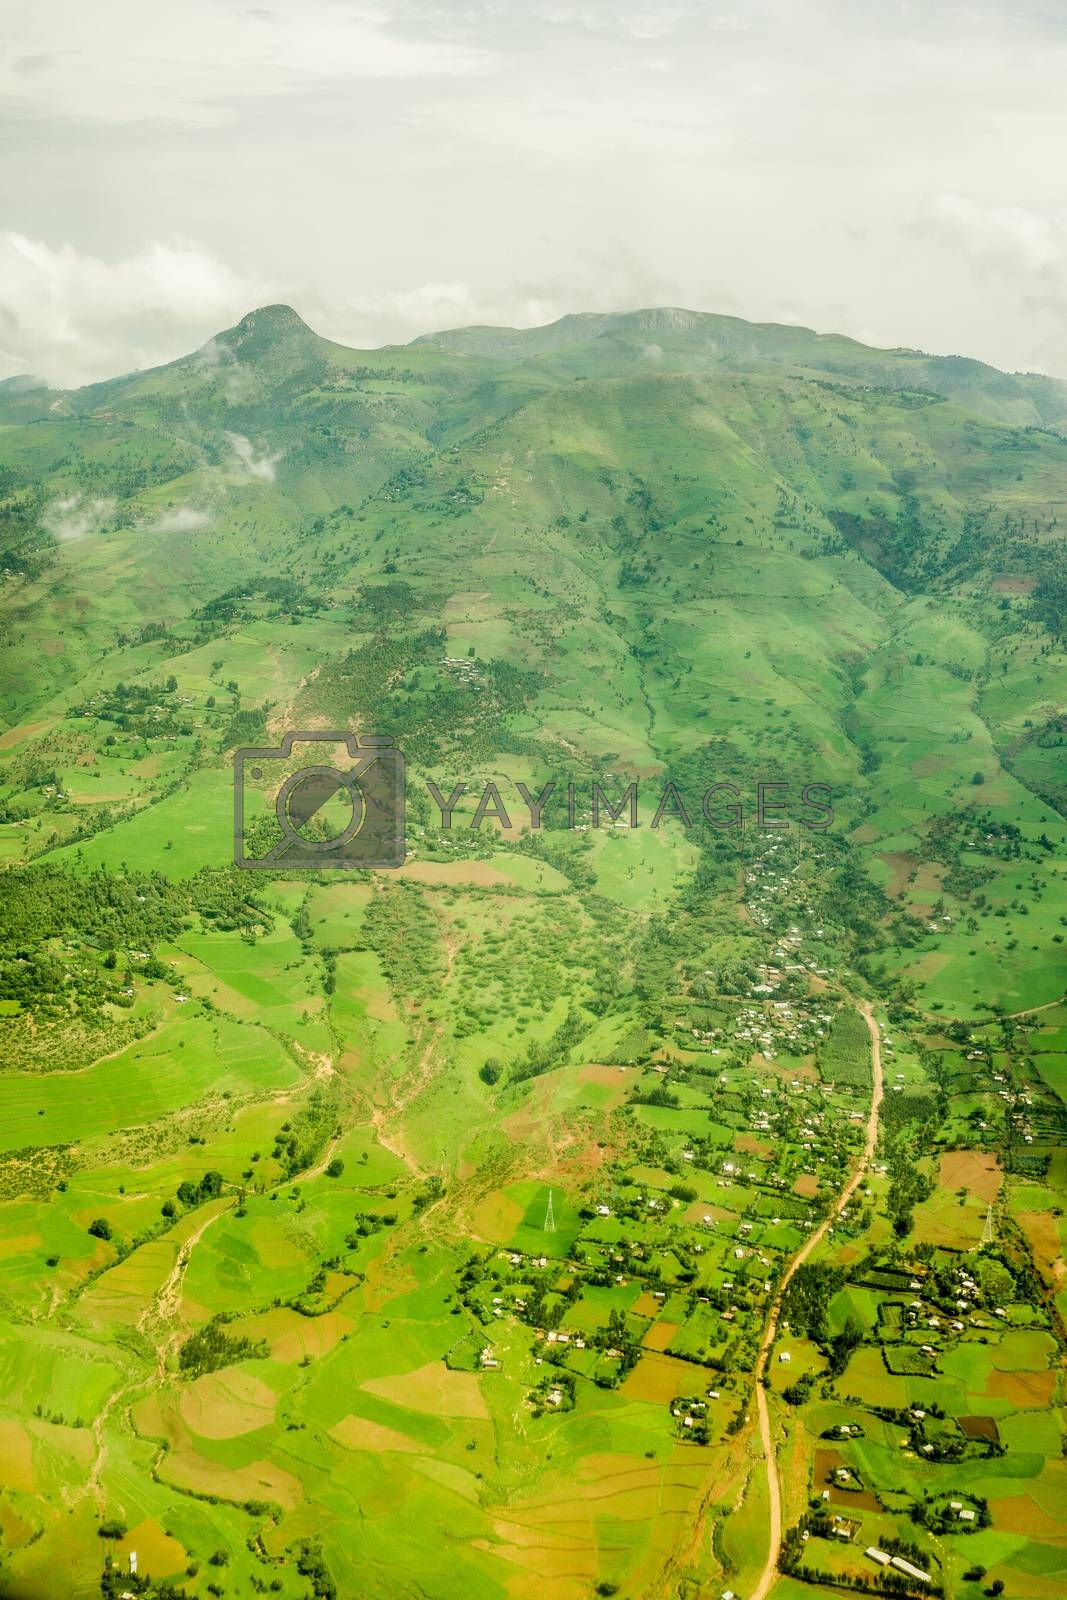 Royalty free image of Highlands surrounding Addis Ababa by derejeb